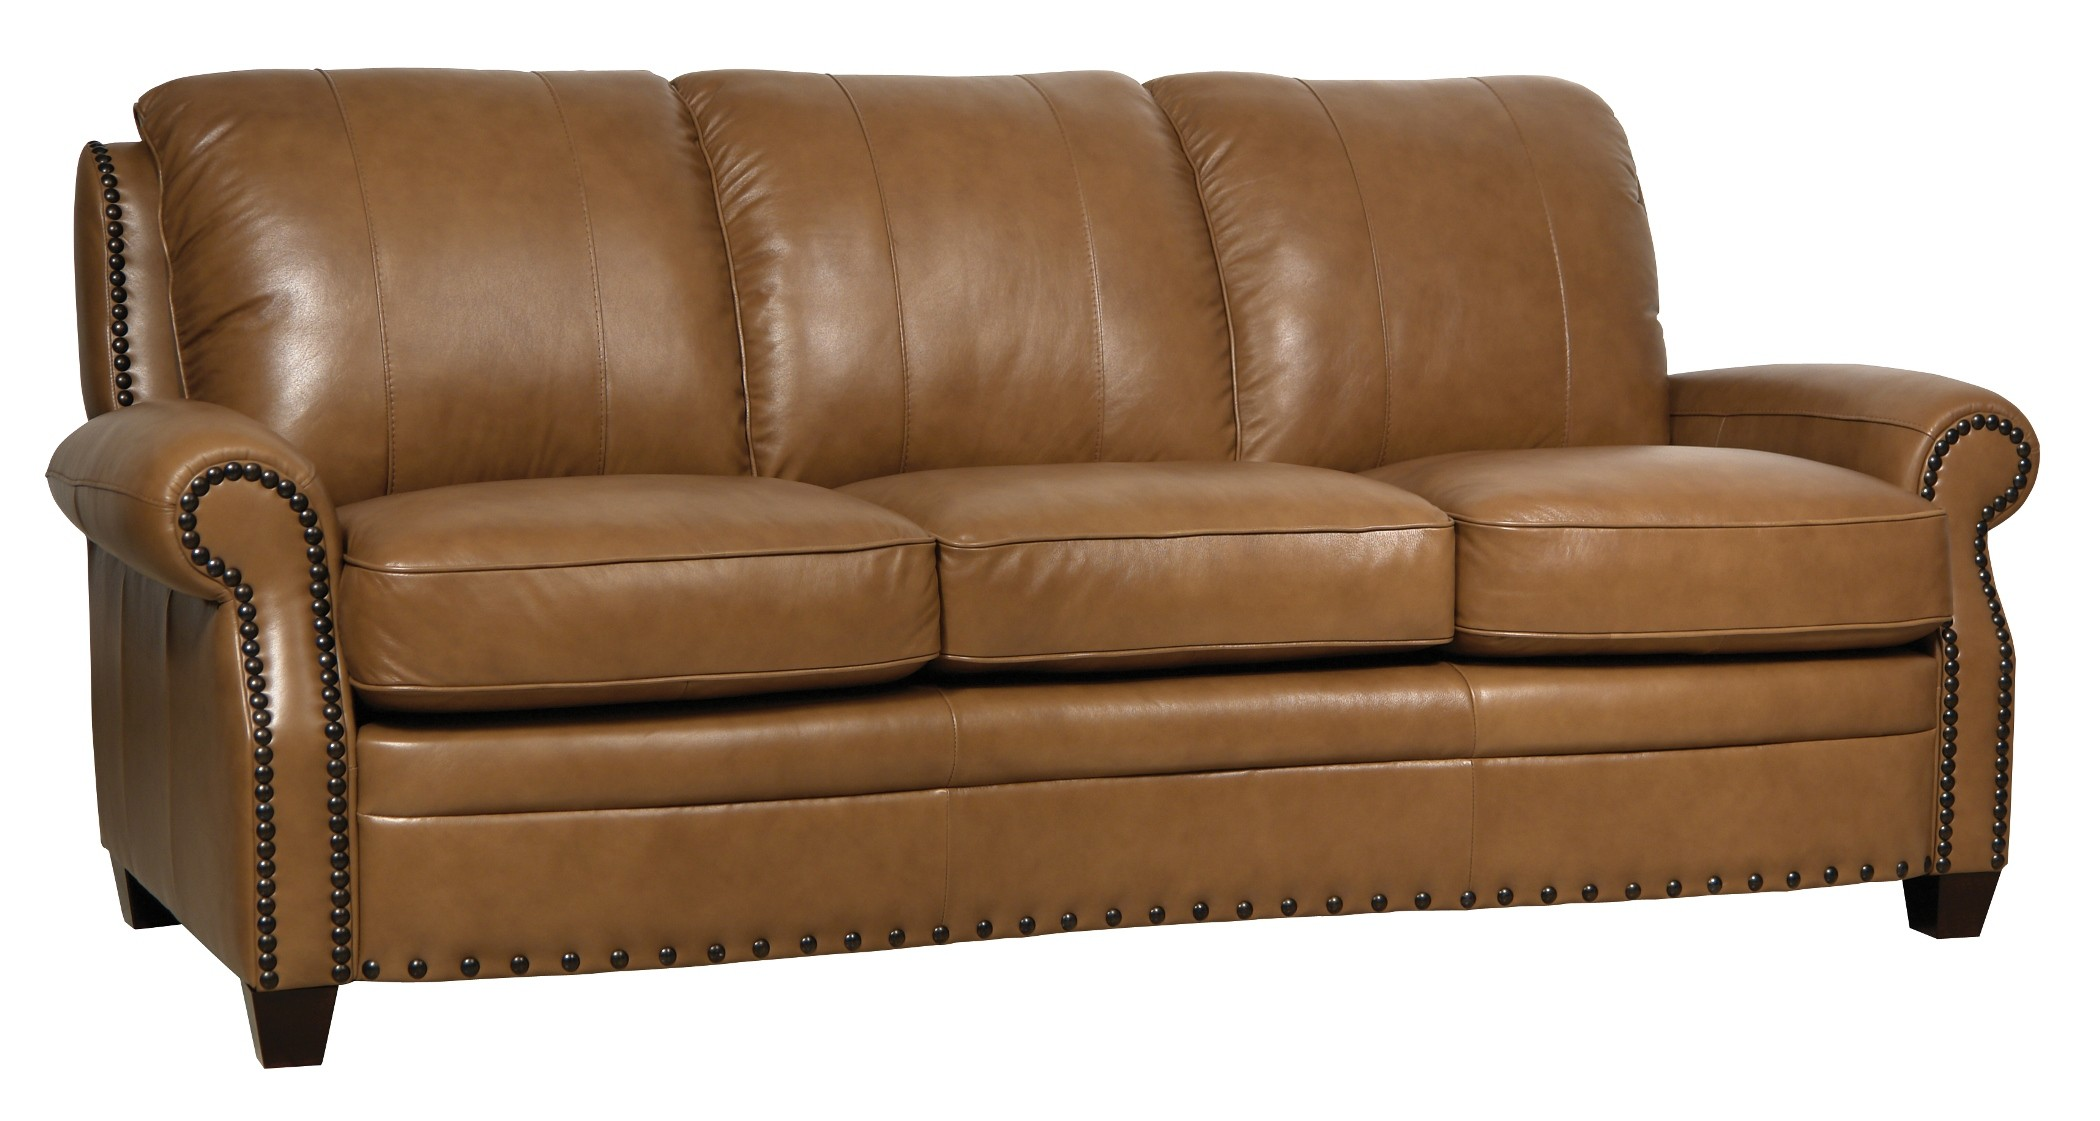 Italian Sofa Auckland Bennett Italian Leather Sofa From Luke Leather Coleman